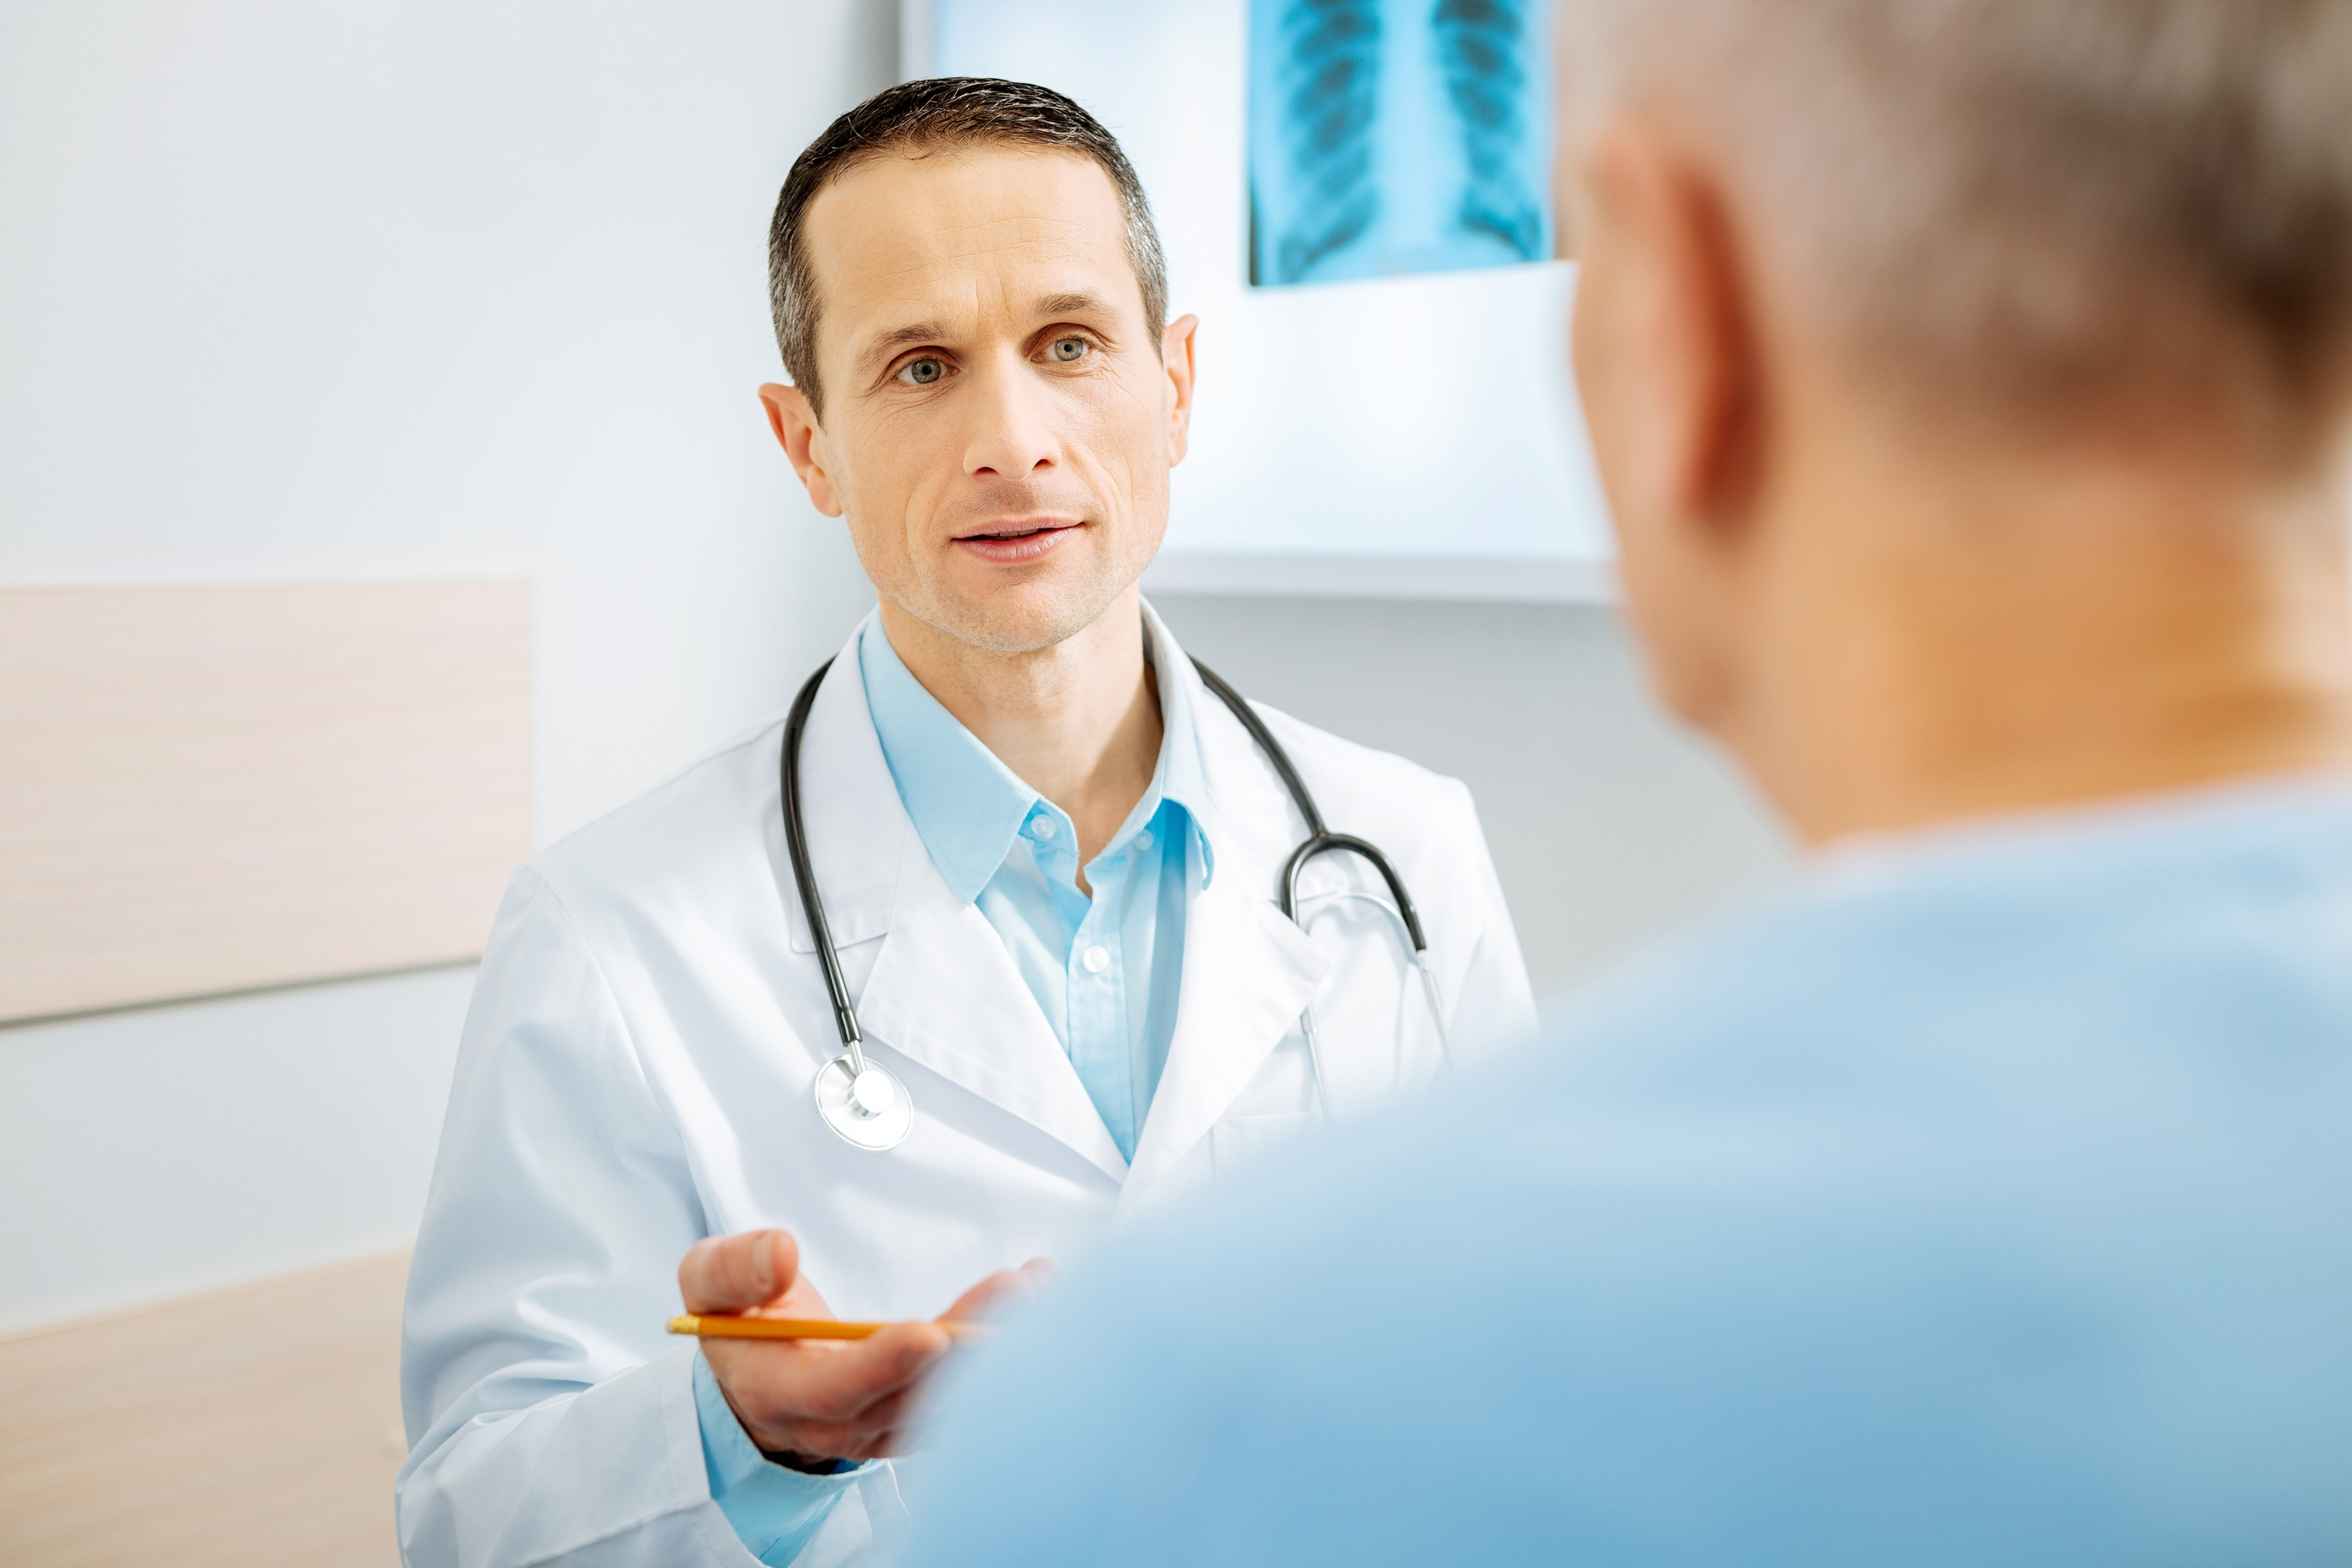 How to Find a Compatible Doctor For Seniors